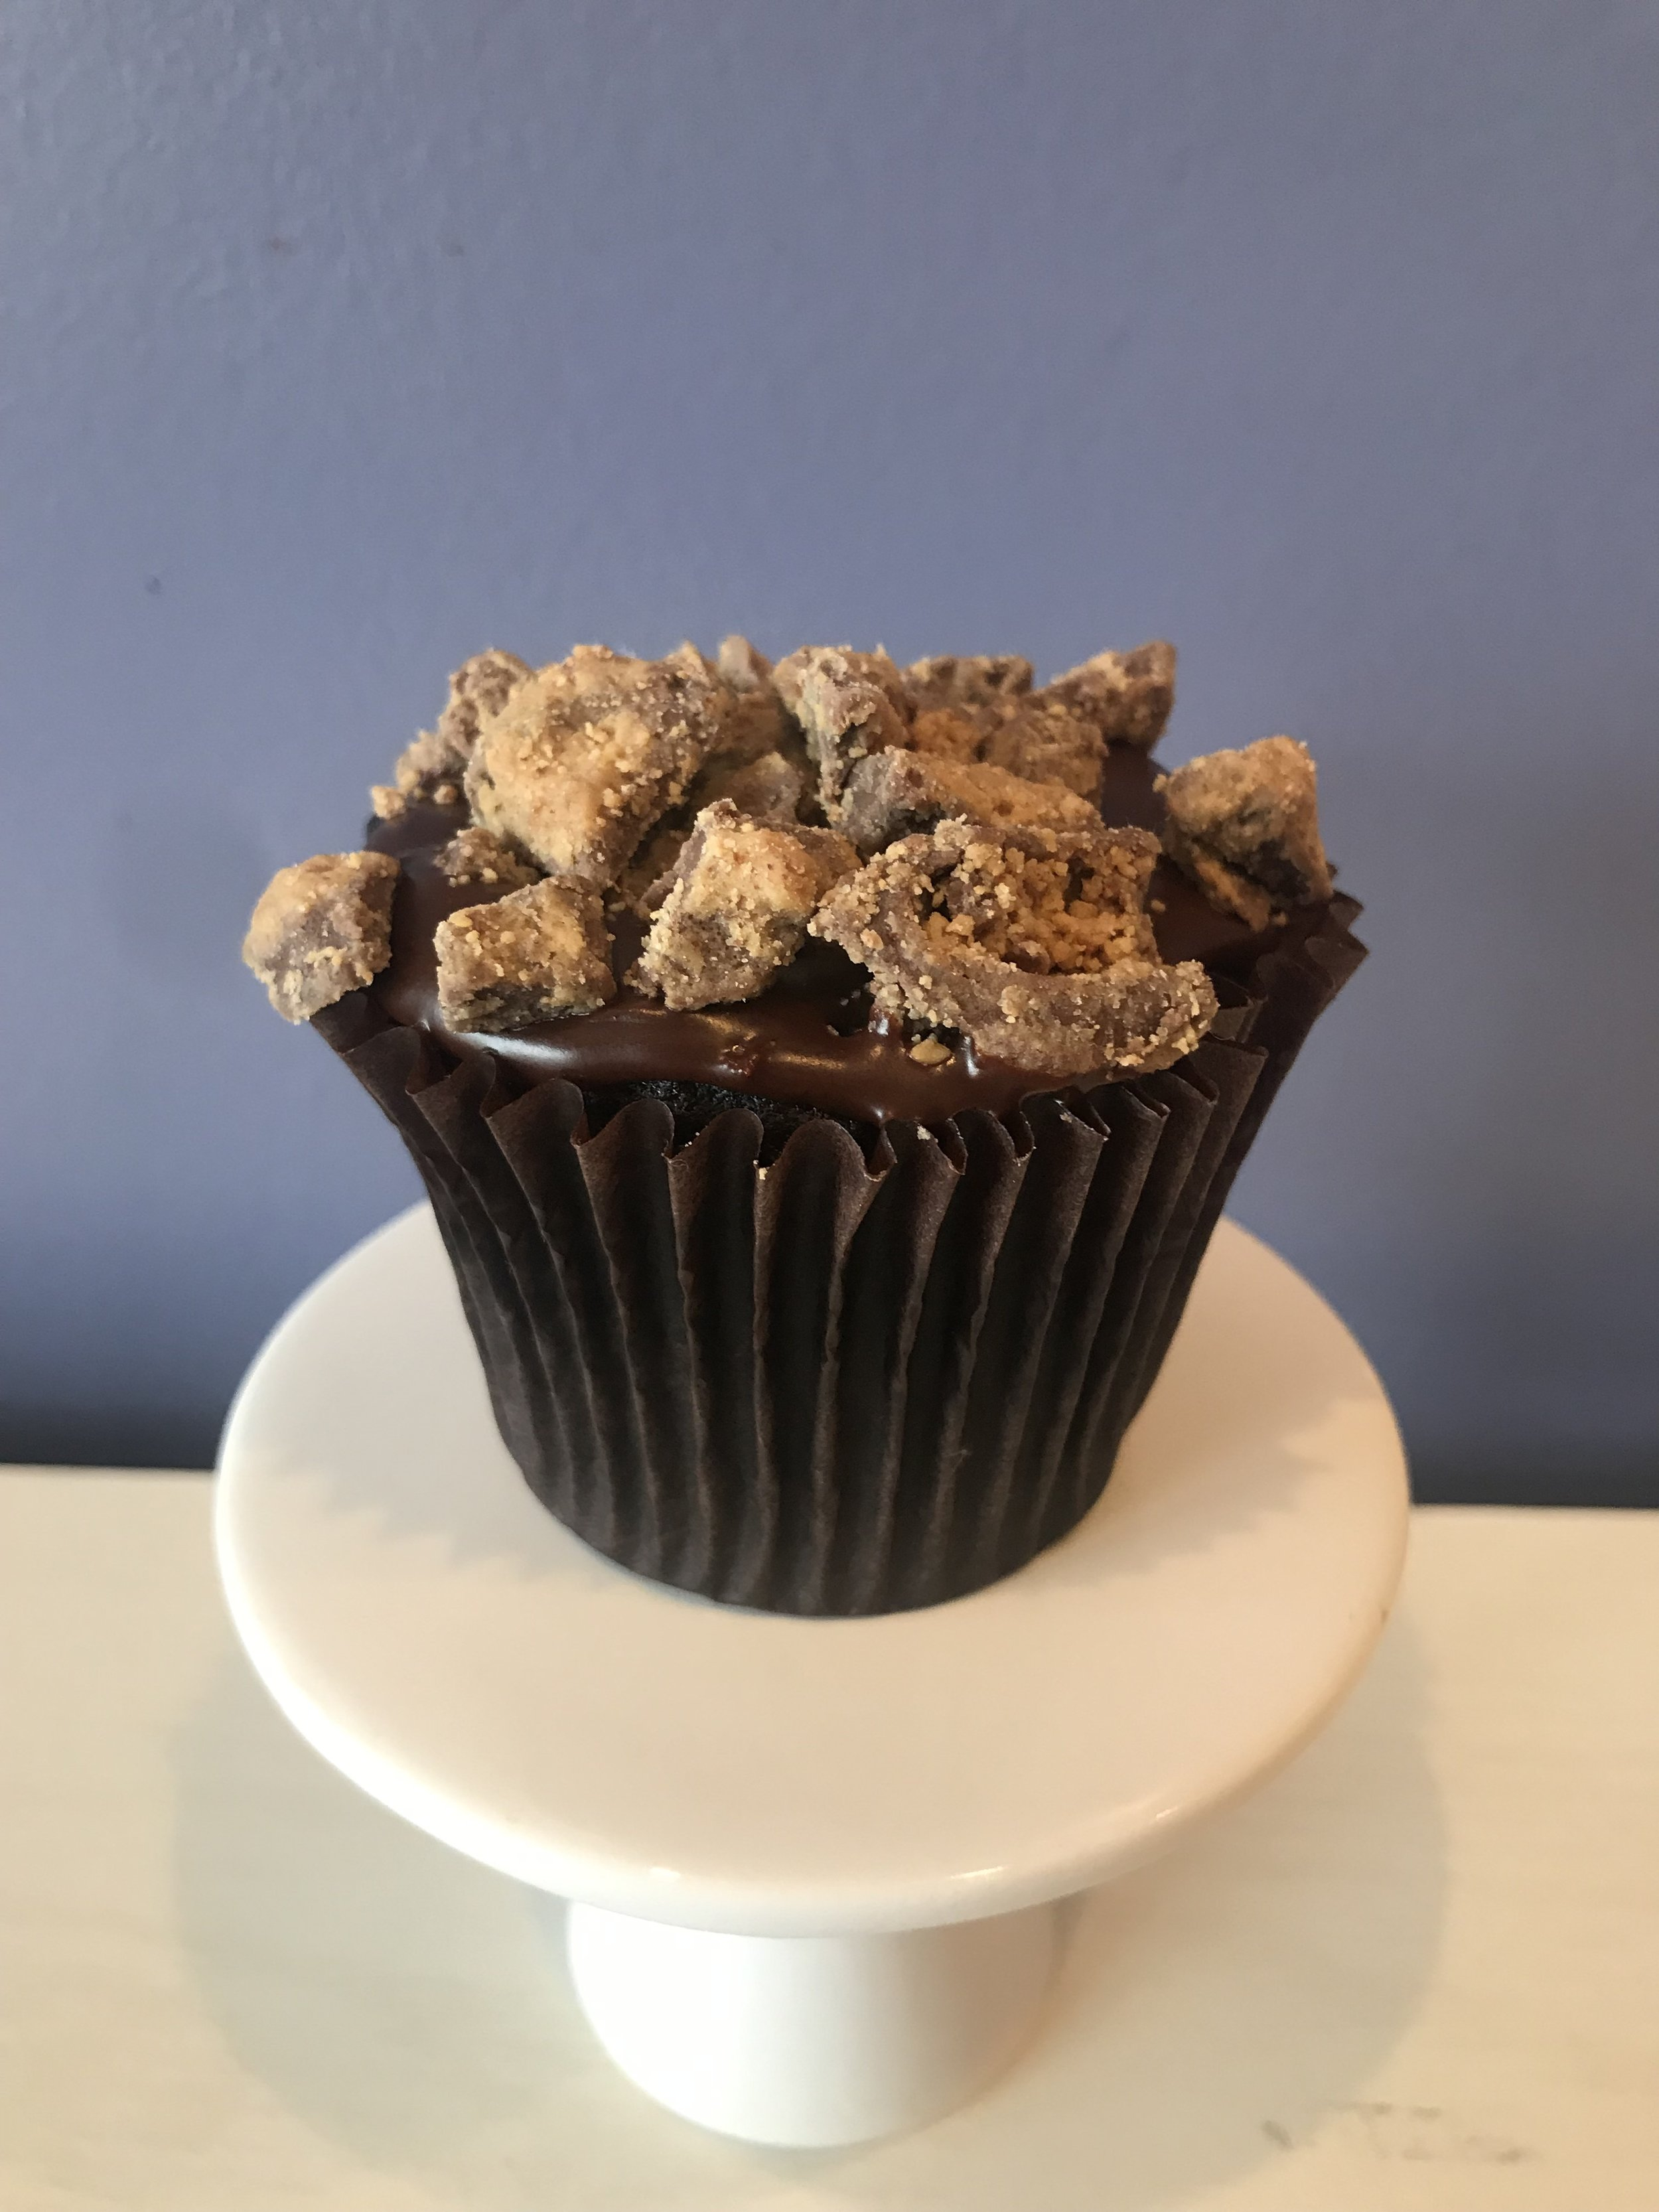 Peanut Butter Cup Craze - Devil's food cake filled with Peanut butter buttercream, topped with chocolate glaze and Reese's peanut butter cups.Gluten Free available